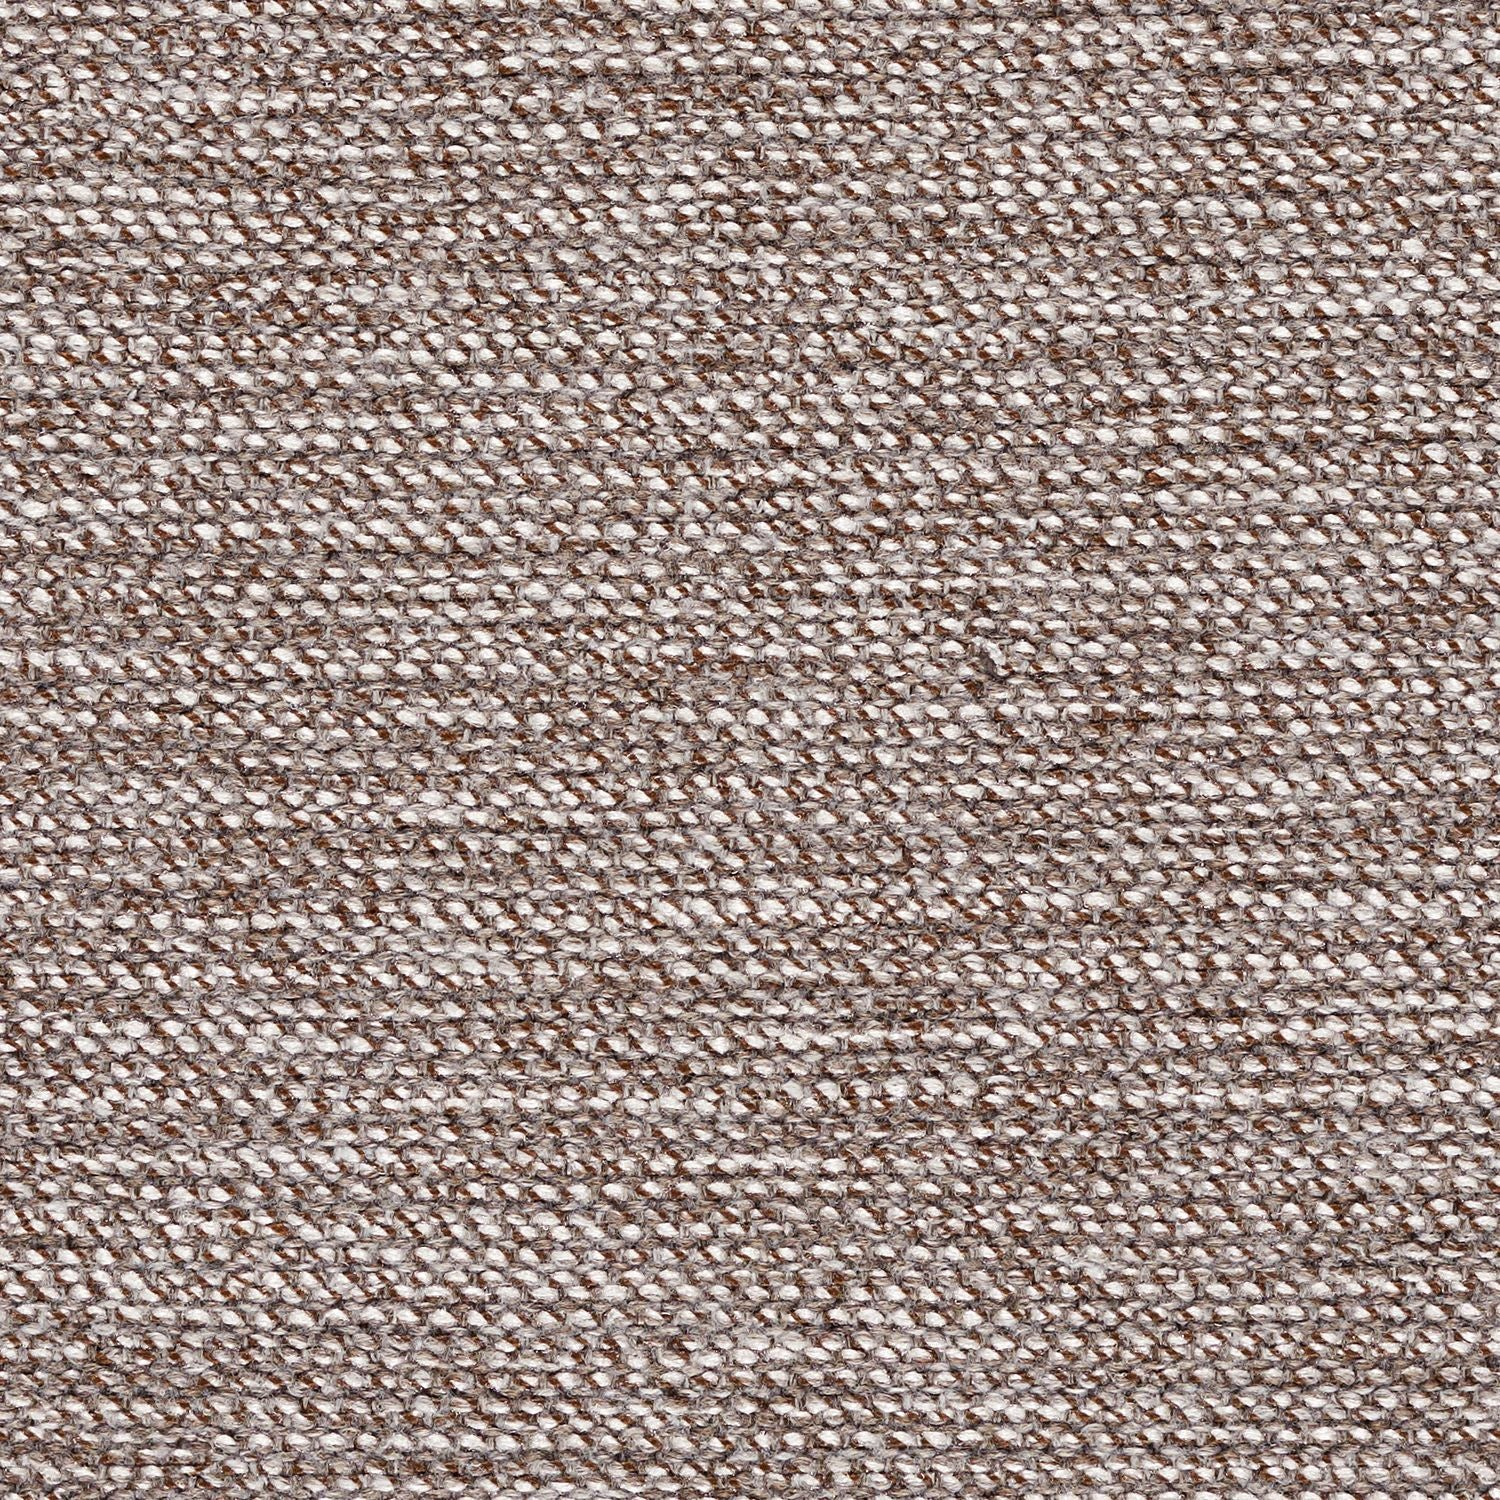 Superspun - Roving - 4064 - 04